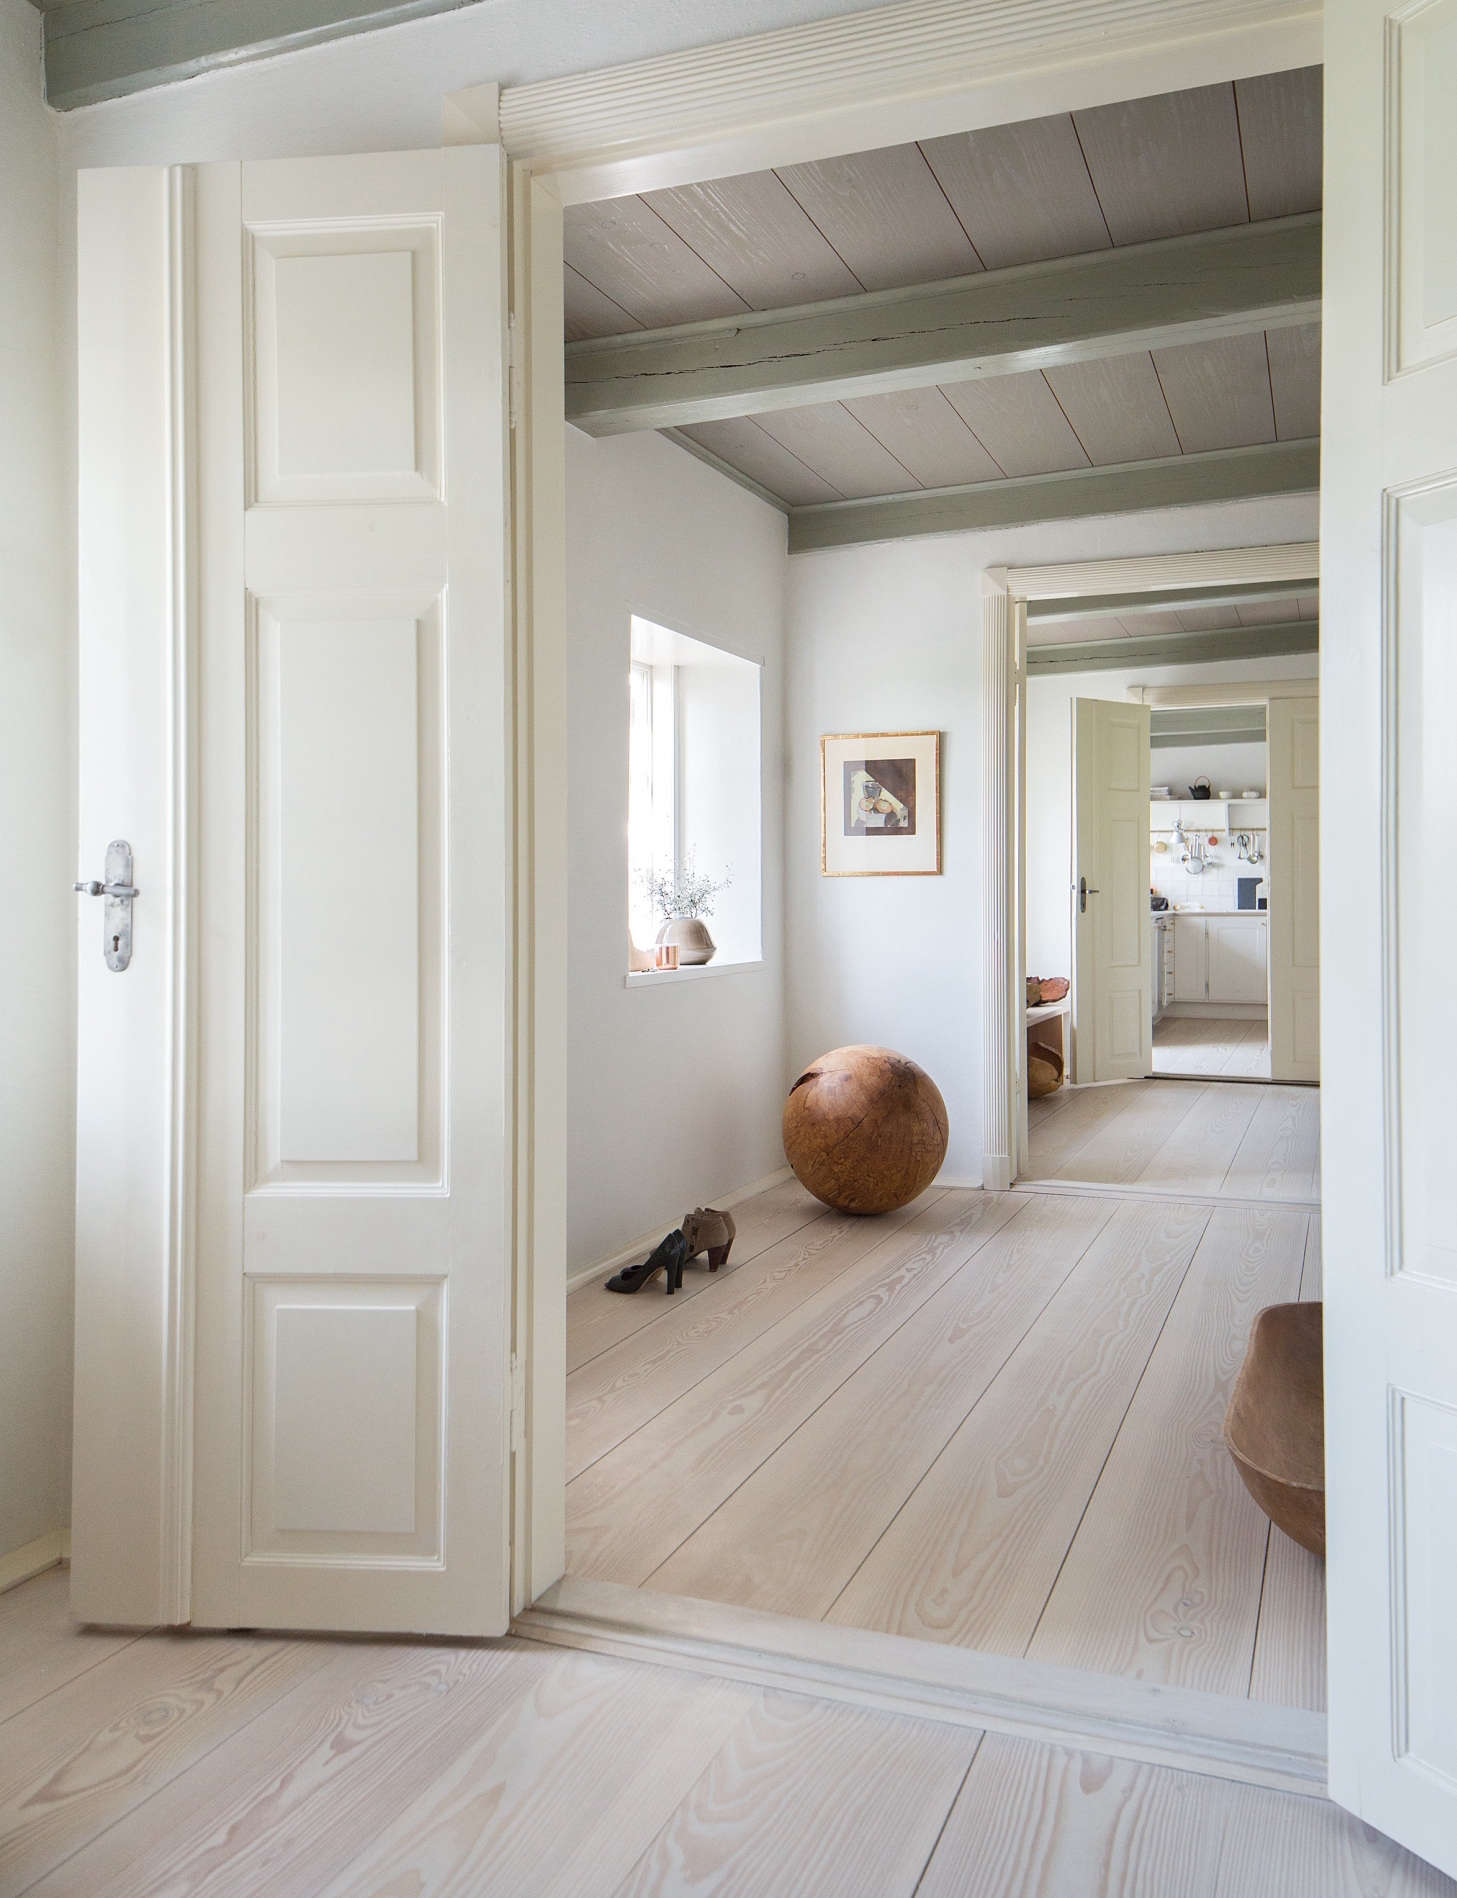 Remodeling 101 A Guide To The Only 6 Wood Flooring Styles You Need To Know Remodelista